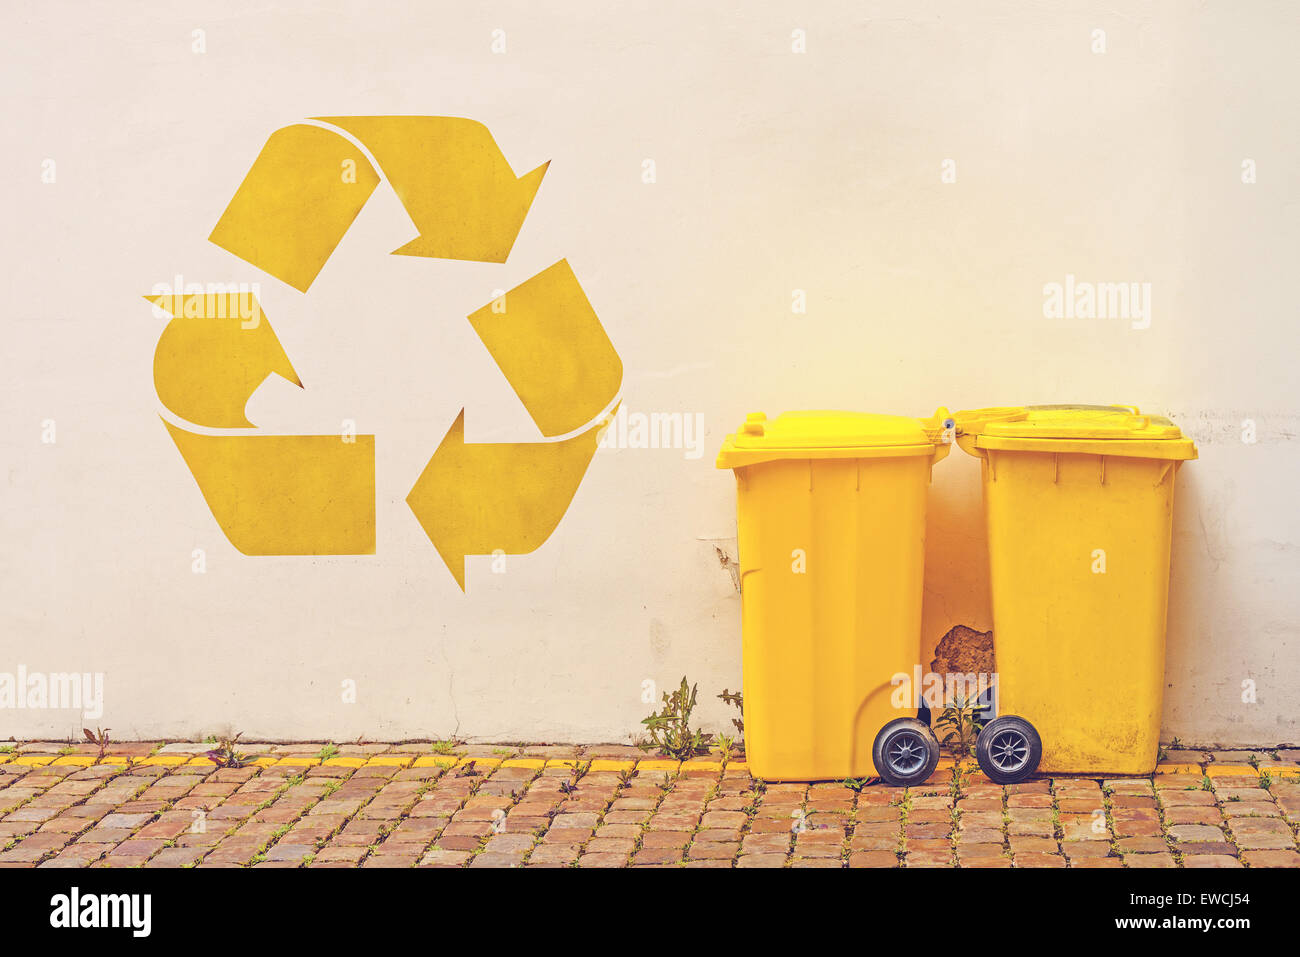 Two Yellow Plastic Recycle Bins on the Street Against White Wall with Recycle Symbol Stencil Graffiti, Toned Image - Stock Image